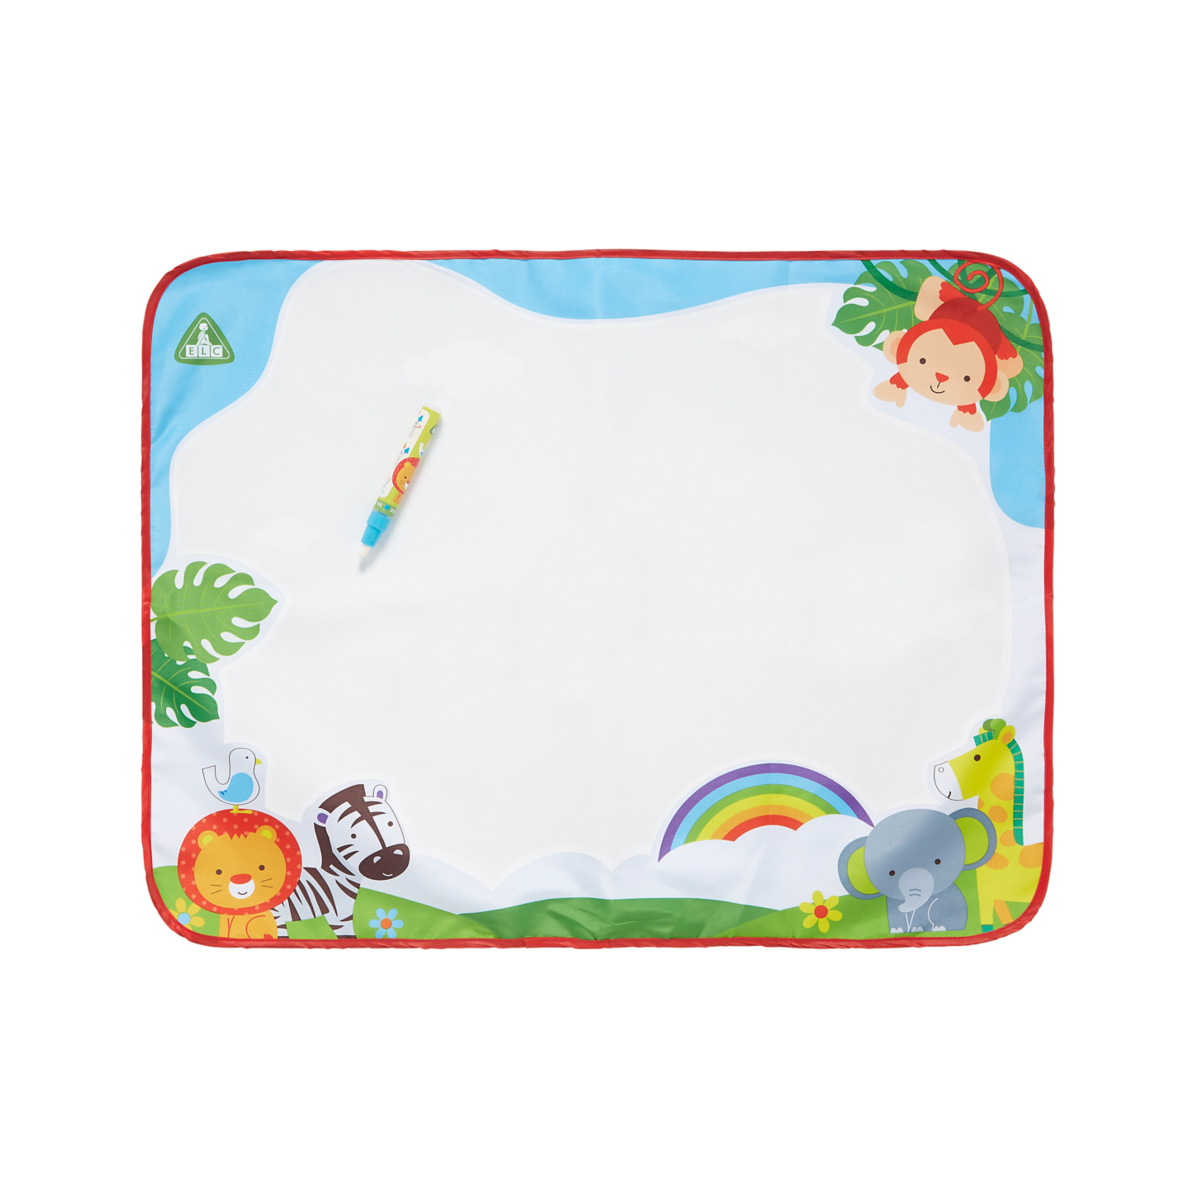 Mini Artist My First Aqua Drawing Mat from Early Learning Center